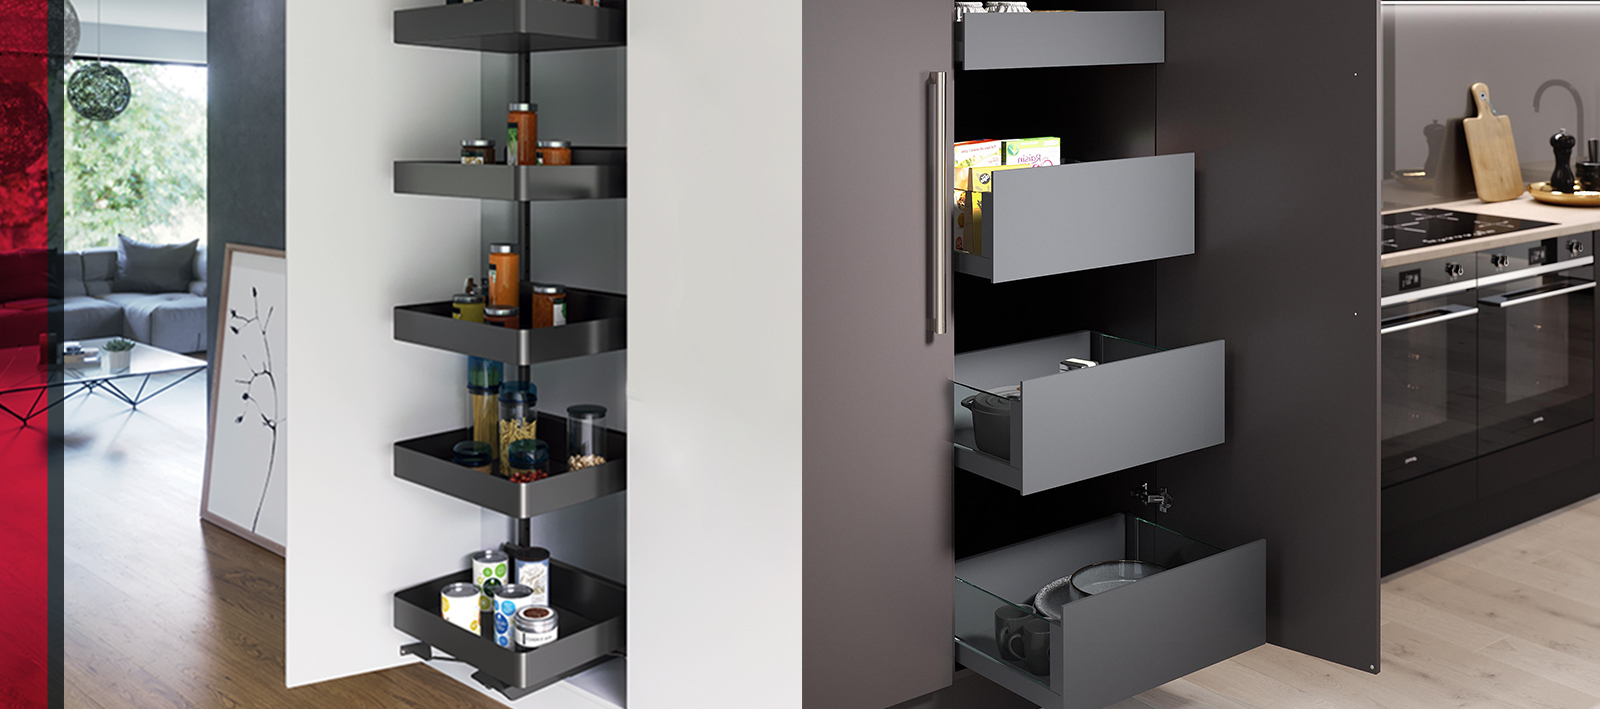 The ultimate slimline storage solution